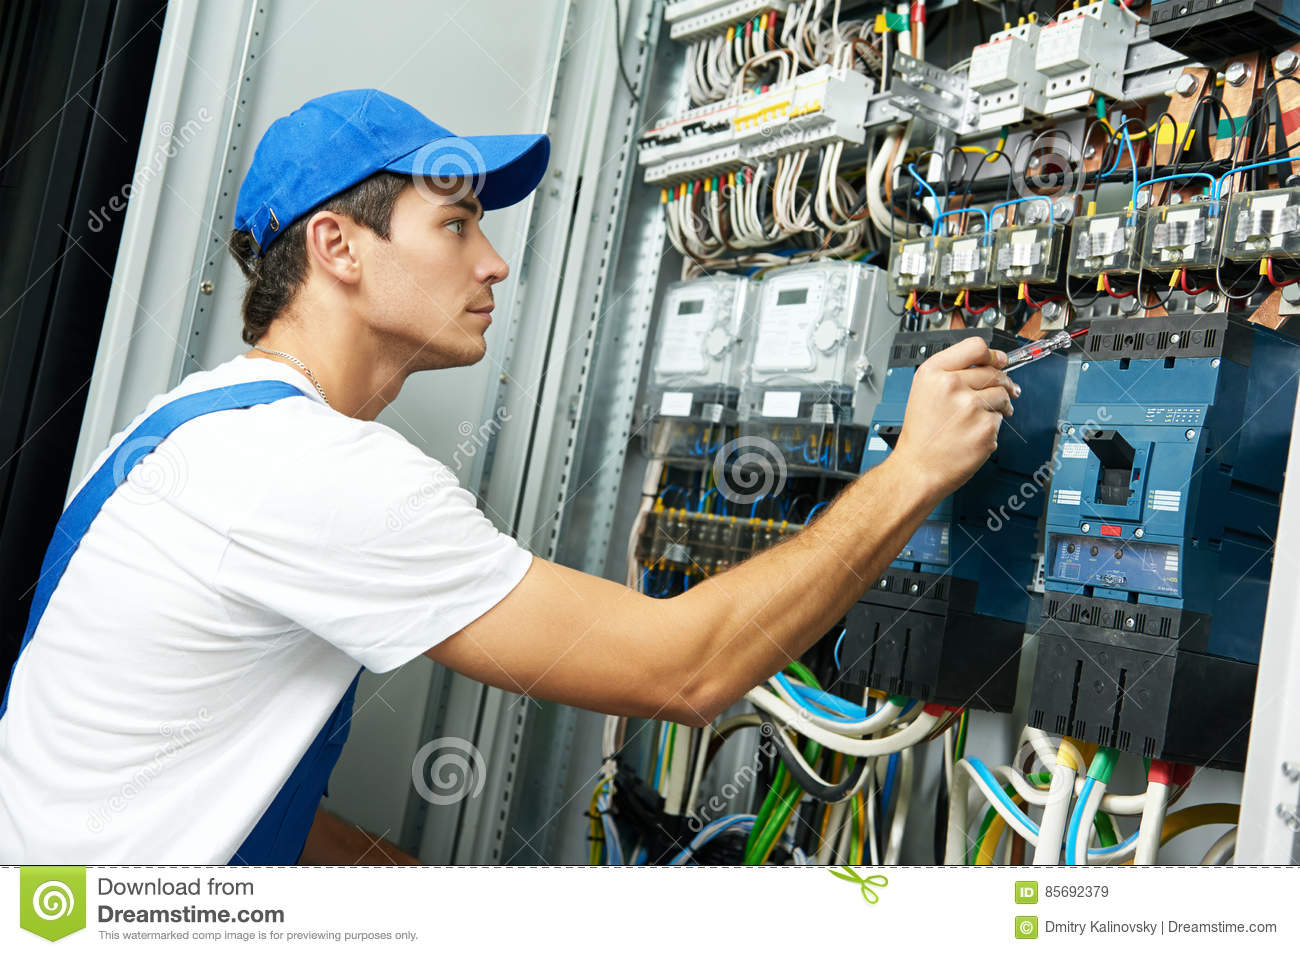 electrician hand test voltage screwdriver electric checking switching electric actuator equipment fuse box 85692379 electrician hand with test voltage screwdriver stock photo image how to test voltage at fuse box at eliteediting.co